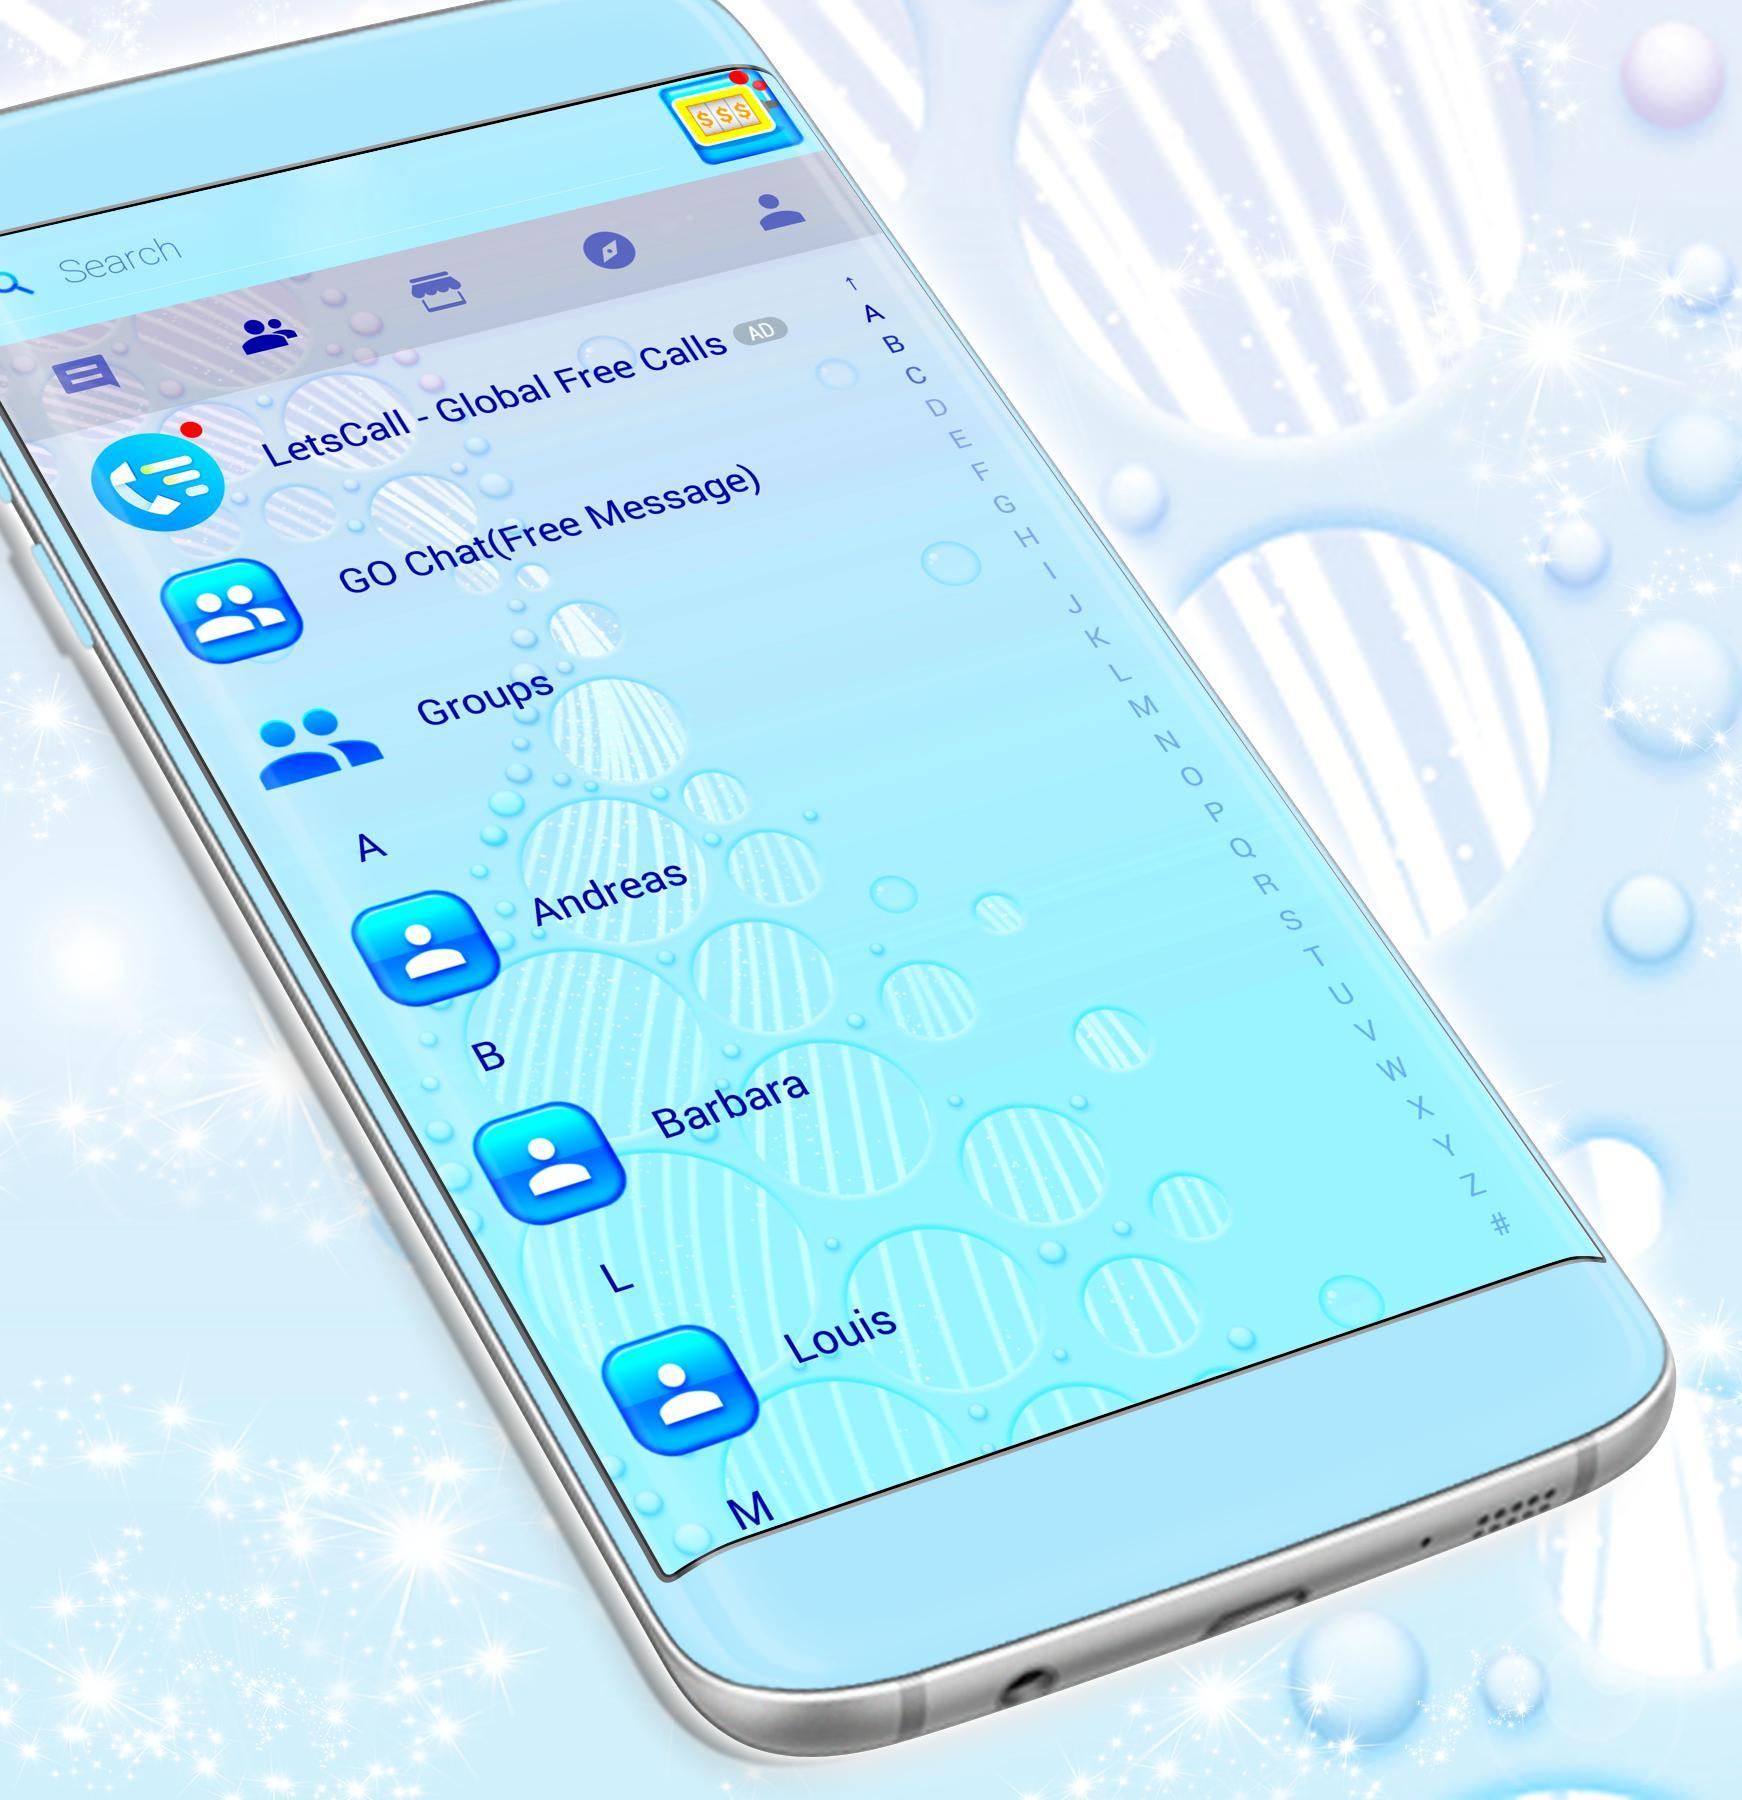 Hd Sms Themes For Samsung Galaxy J5 for Android - APK Download